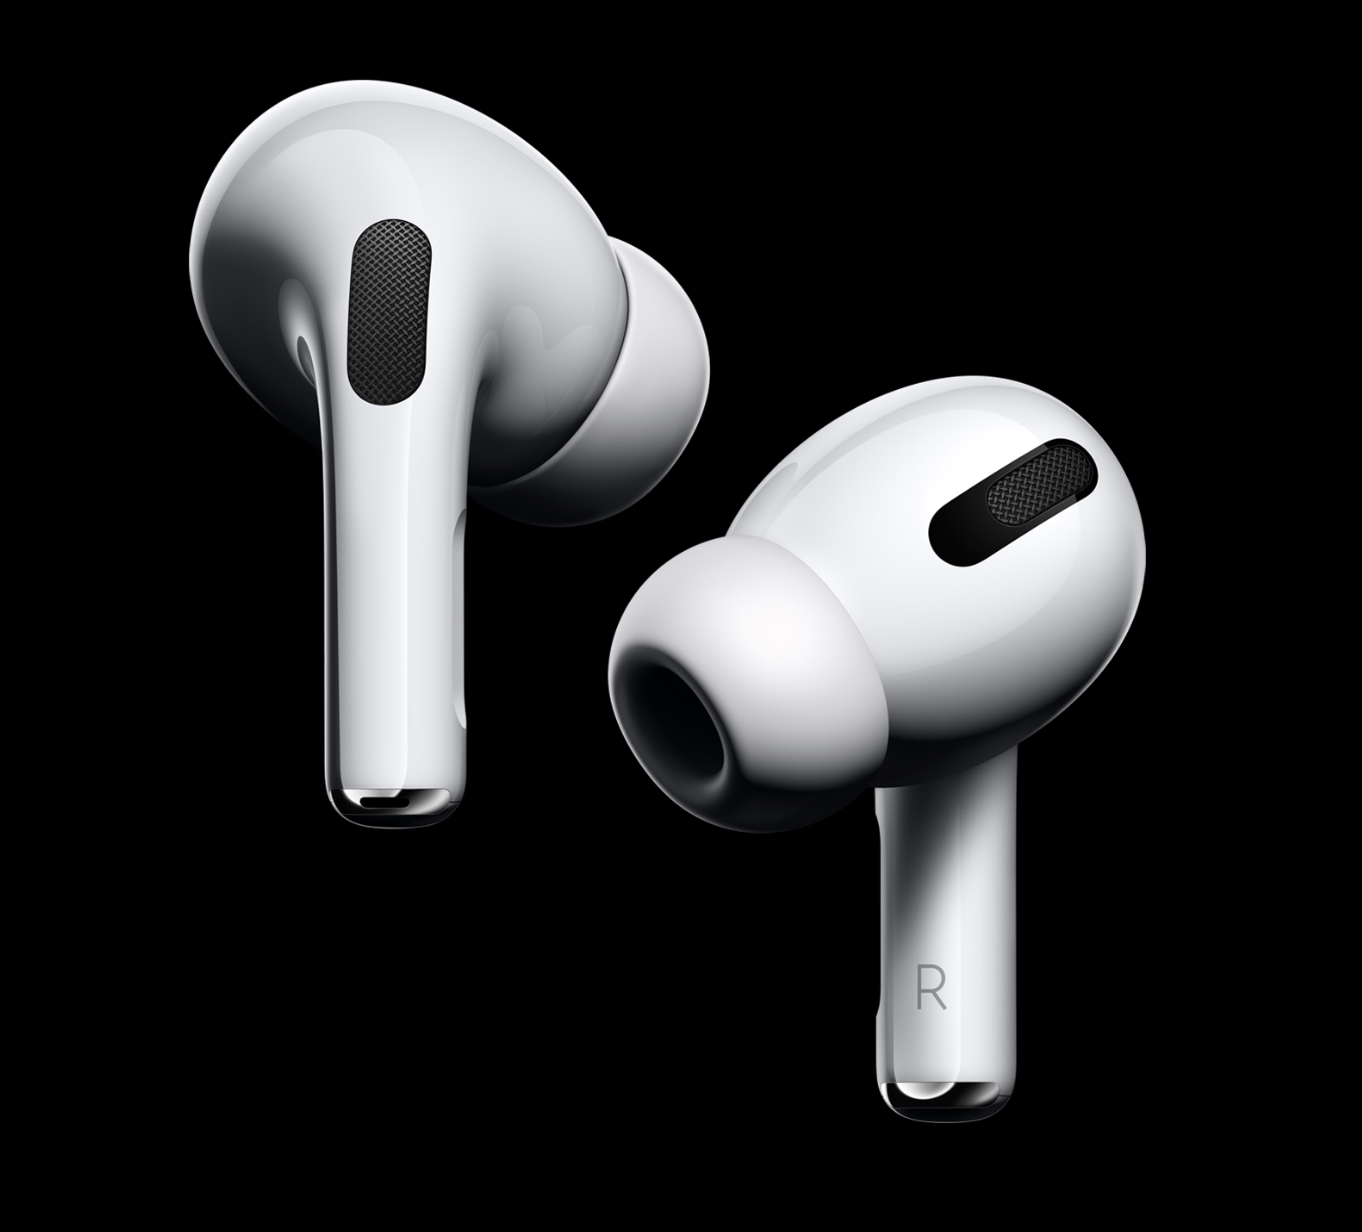 Apple AirPods Pro announced with noise cancellation, sweat resistance